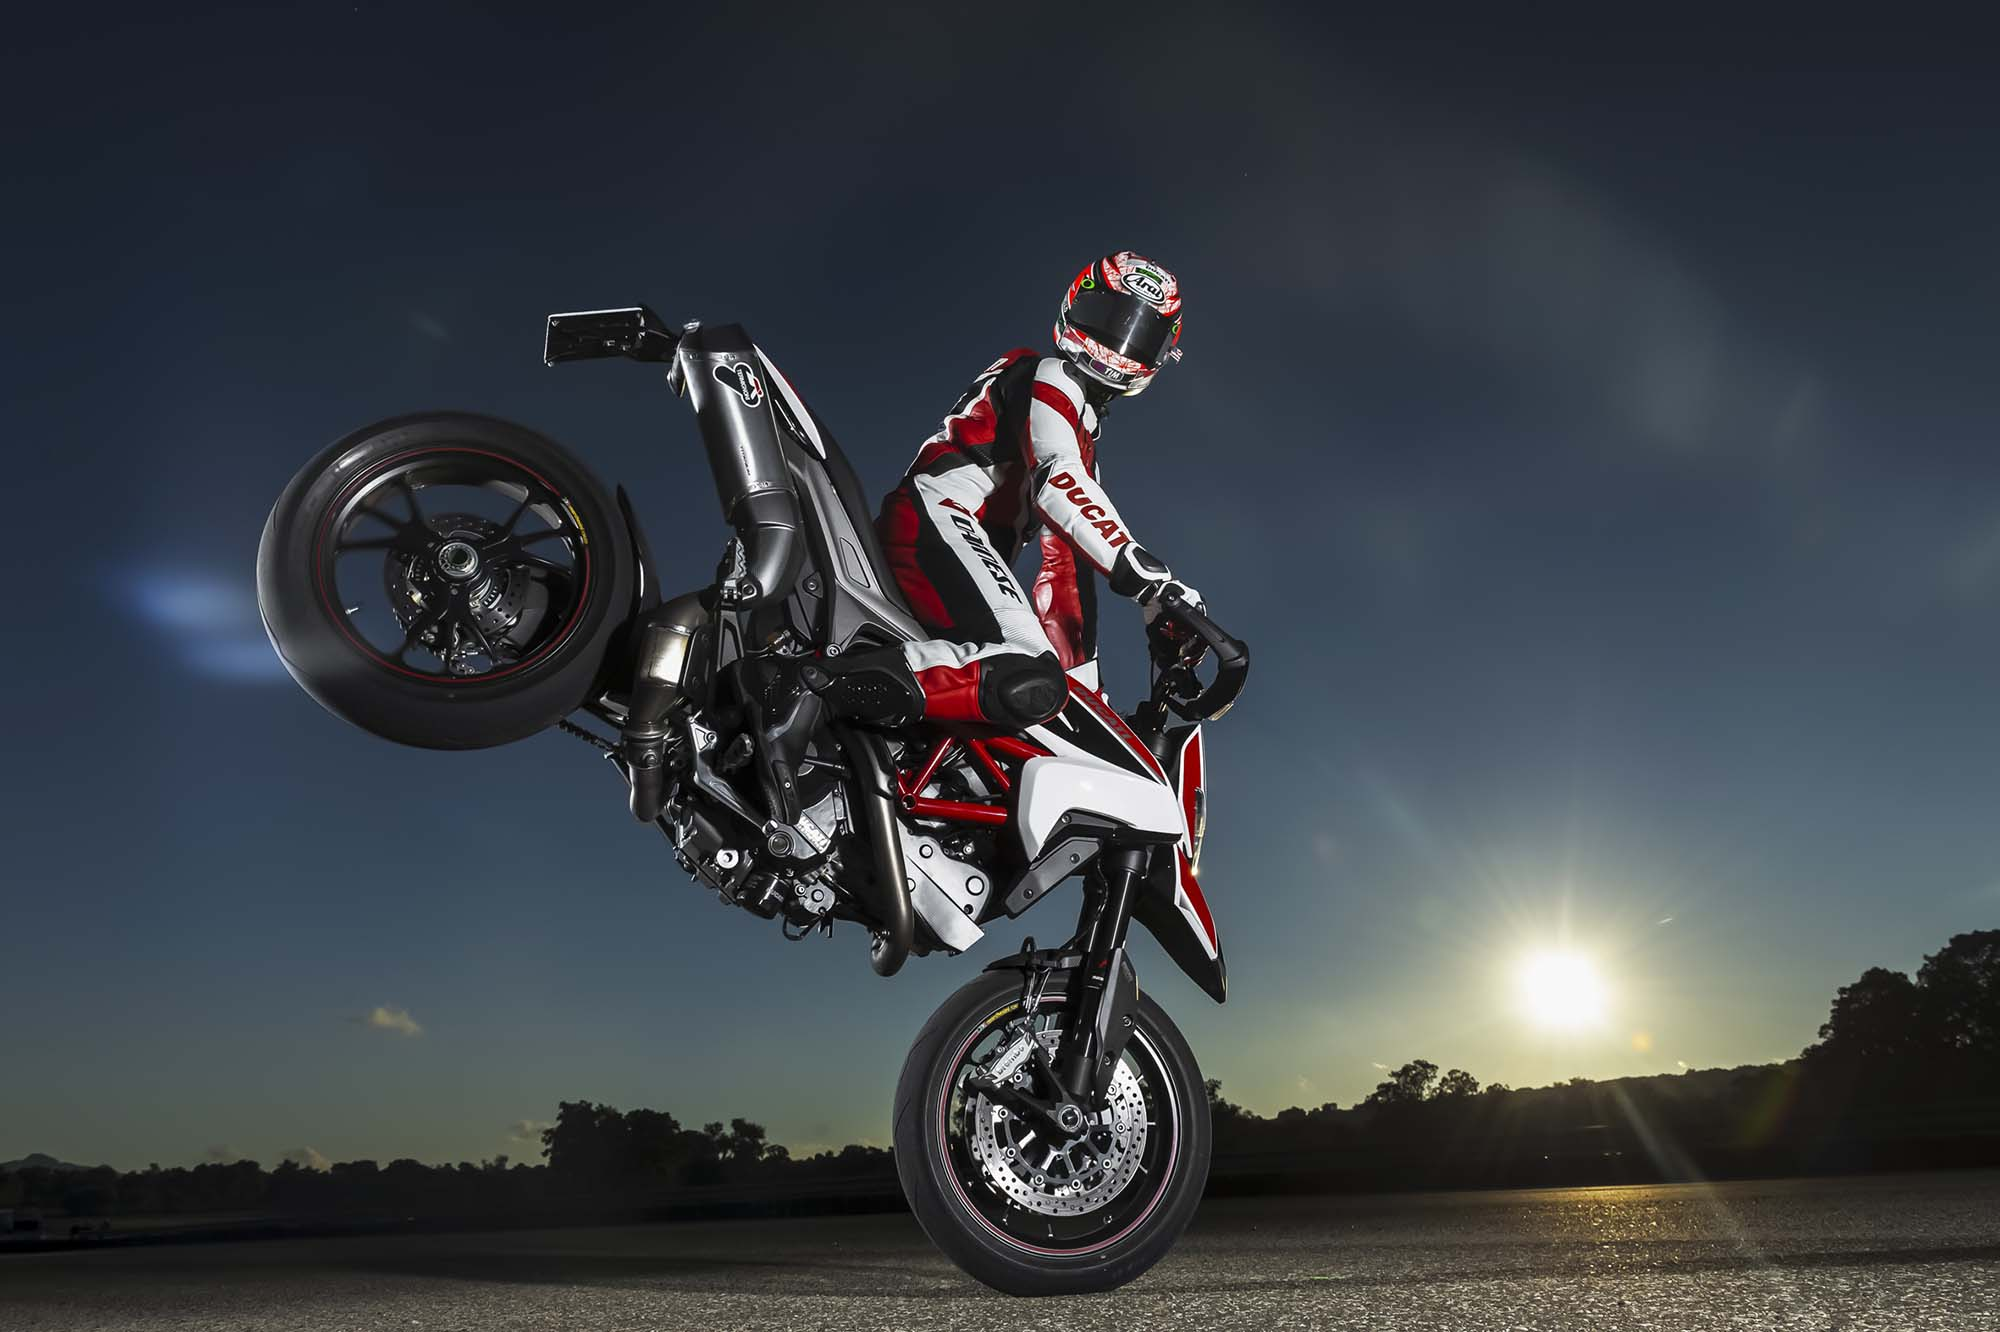 2013 Ducati Hypermotard Official Pictures Show An Awesome